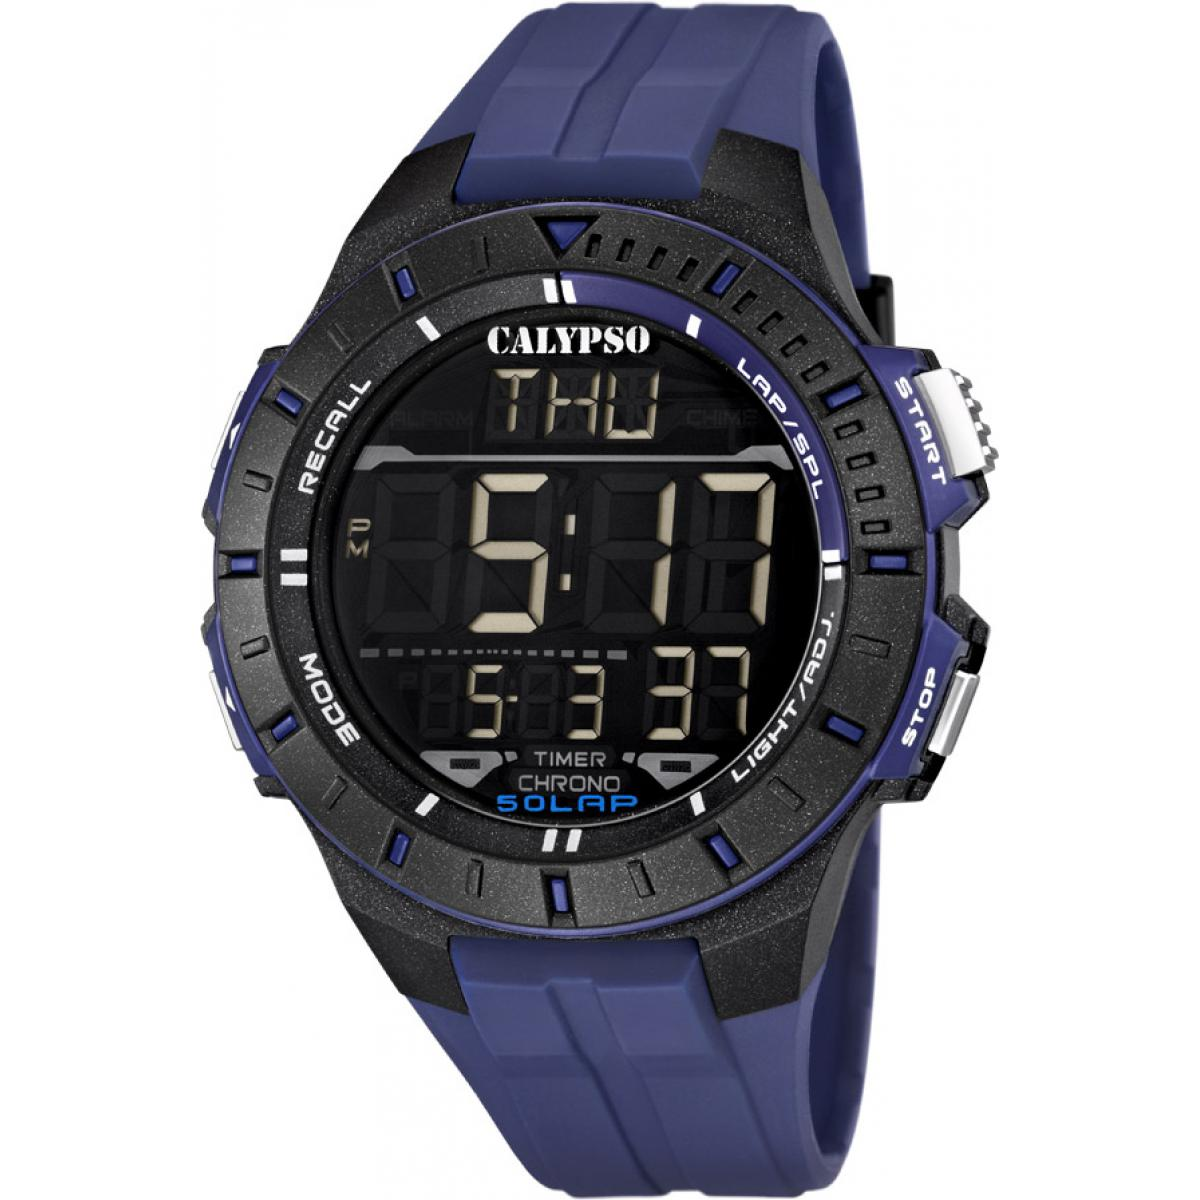 Montre Calypso Silicone Digital For Man K5607-2 - Homme